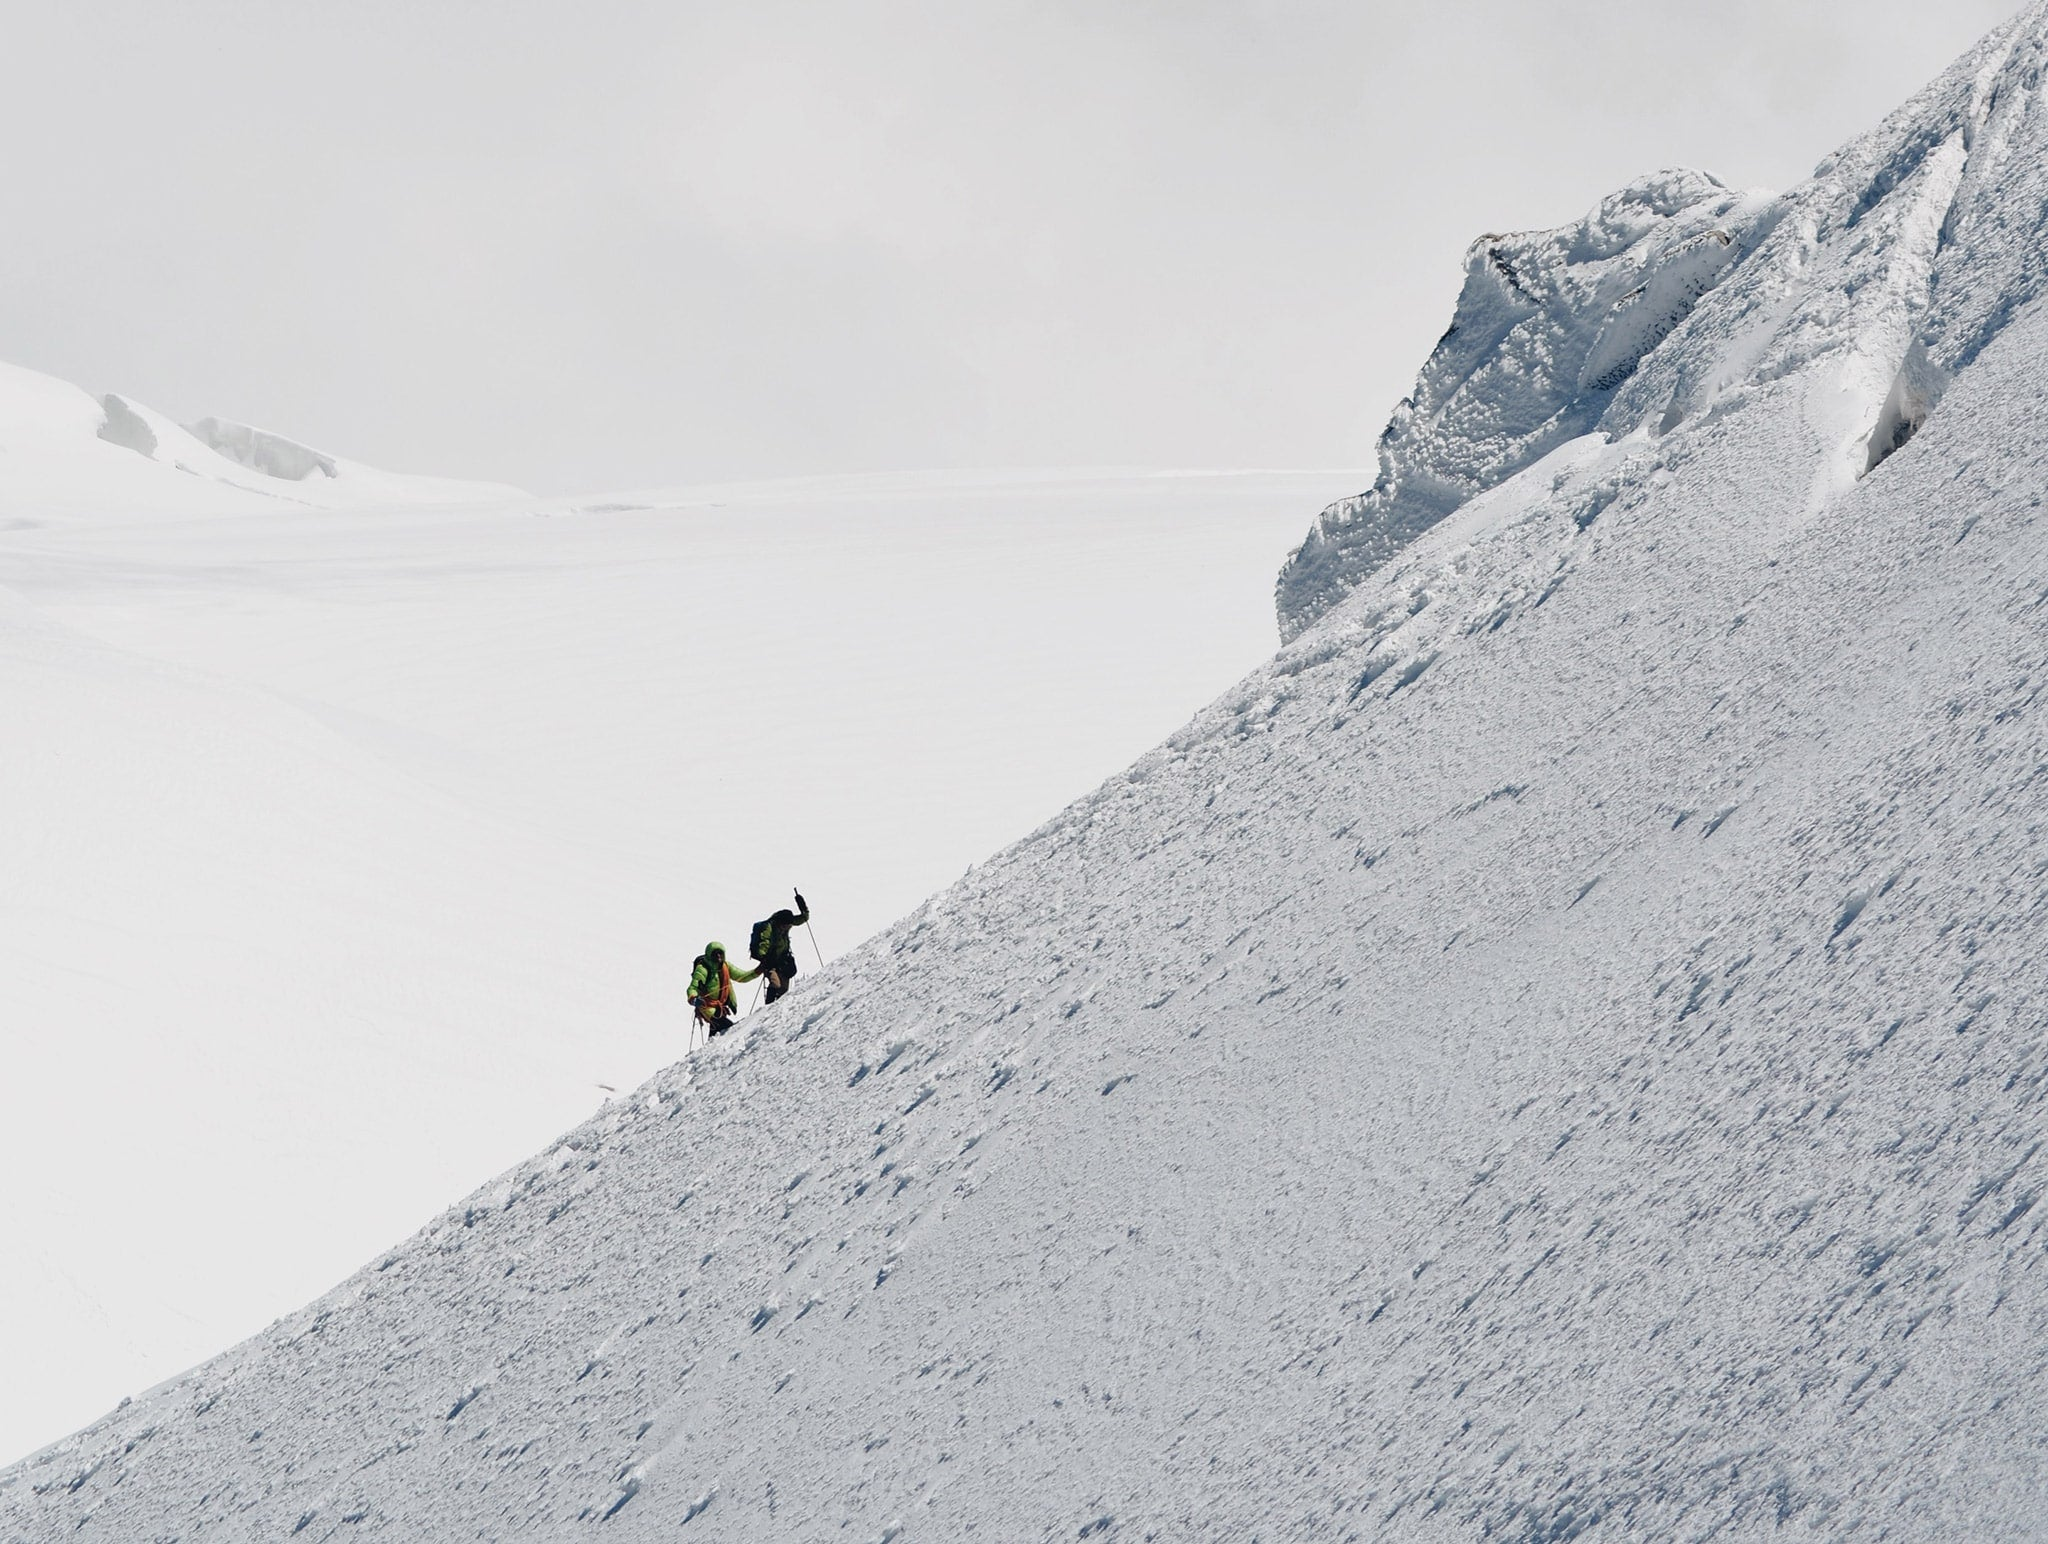 Mizo backpacks men walking on a hill with alpinism type of backpack on their shoulders